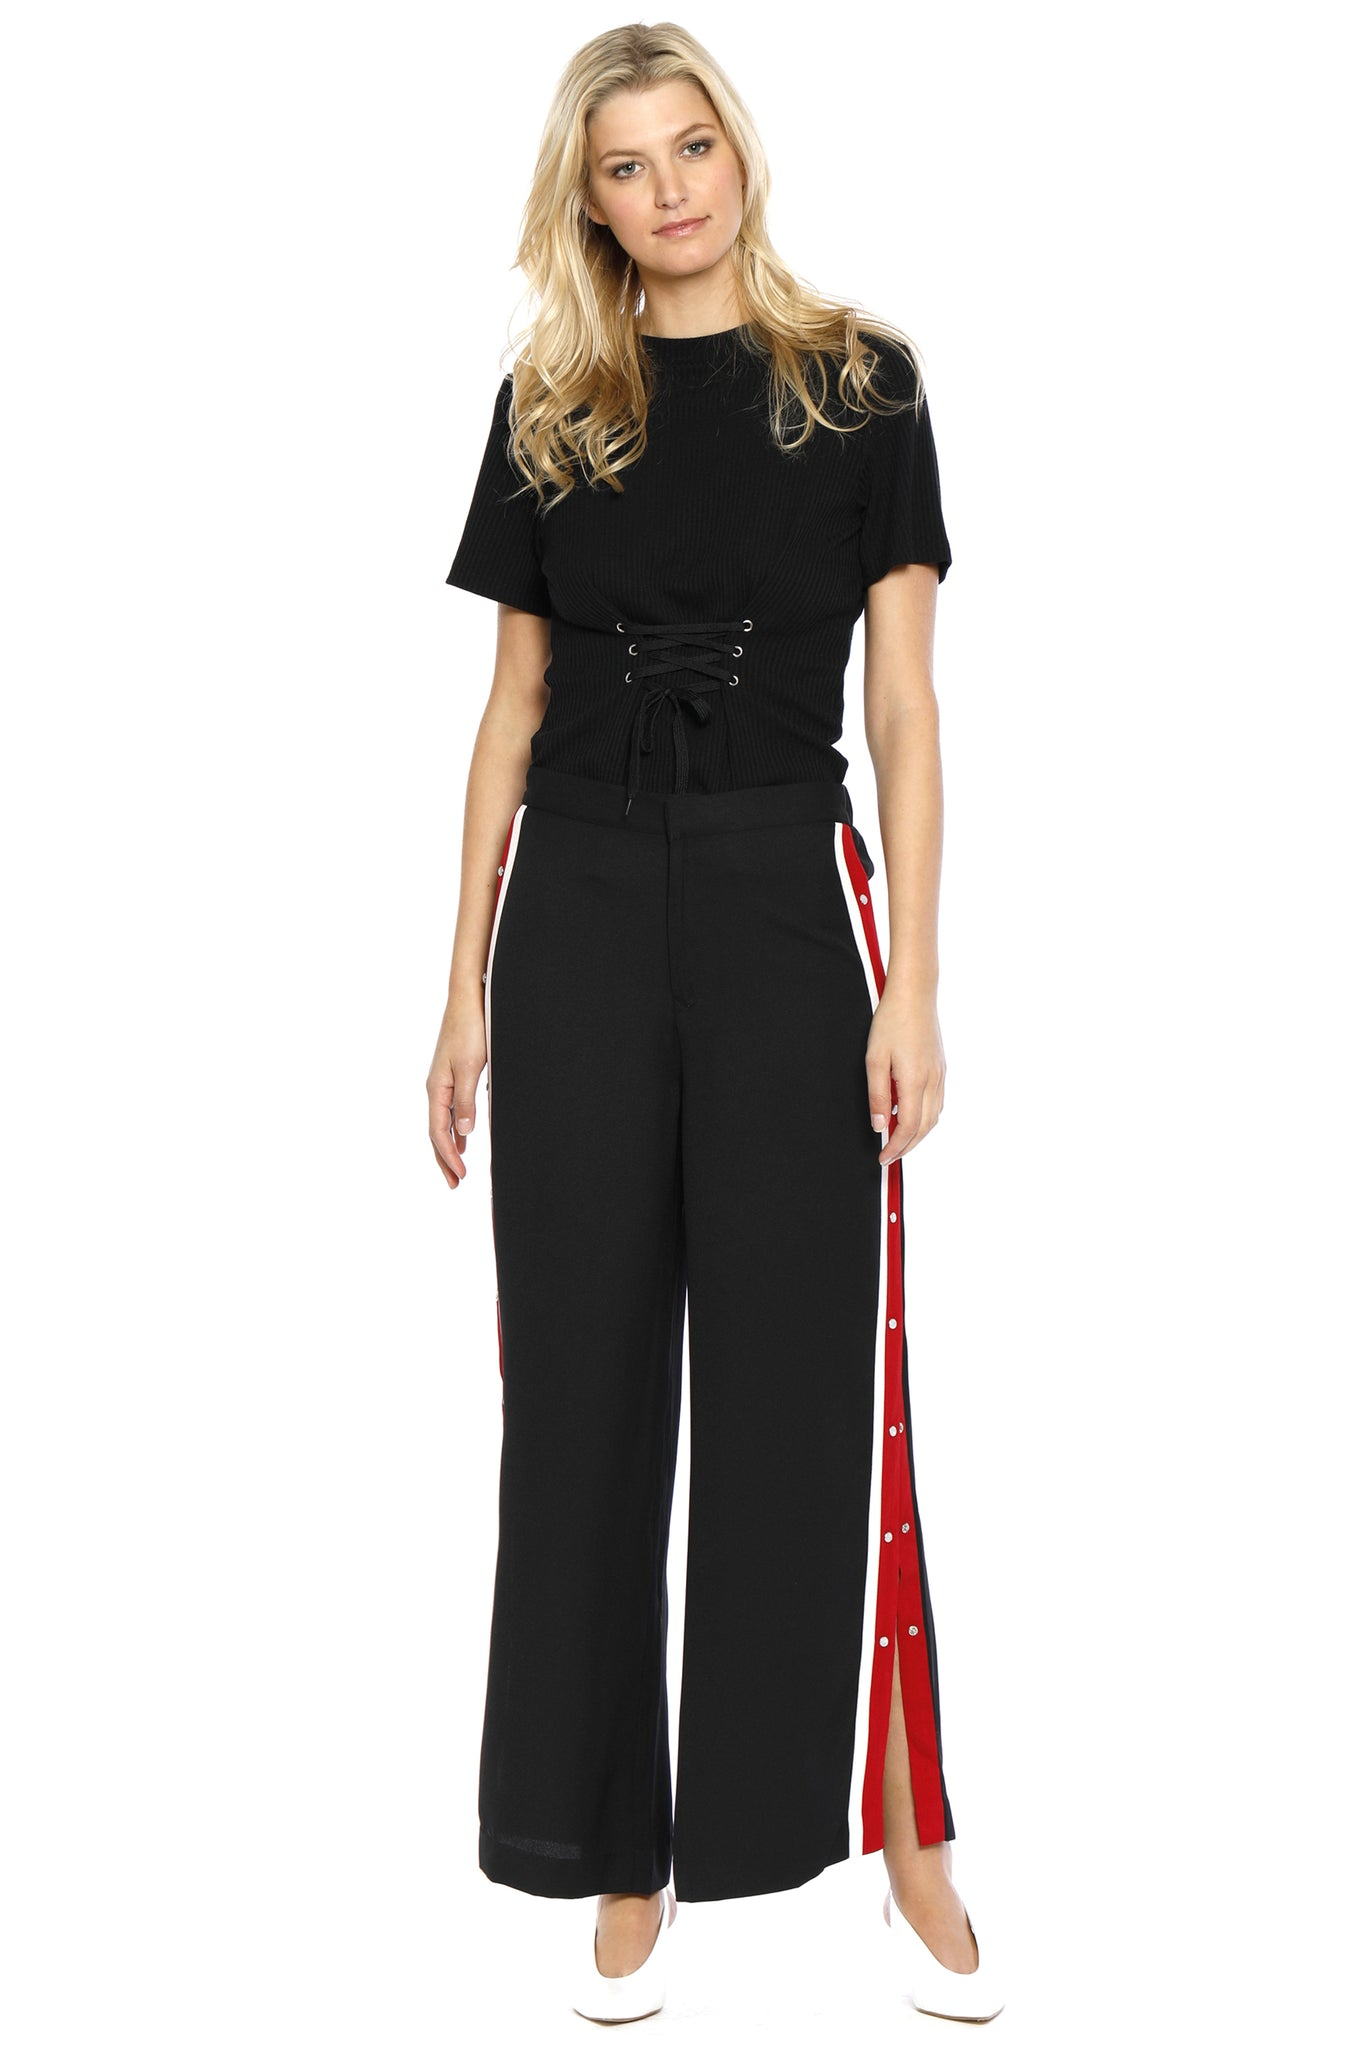 Front view of Maxine Pant, black retro pants with buttons on the side and a red stripe outlined with white borders on both sides, 100% Polyester and Machine-washable.